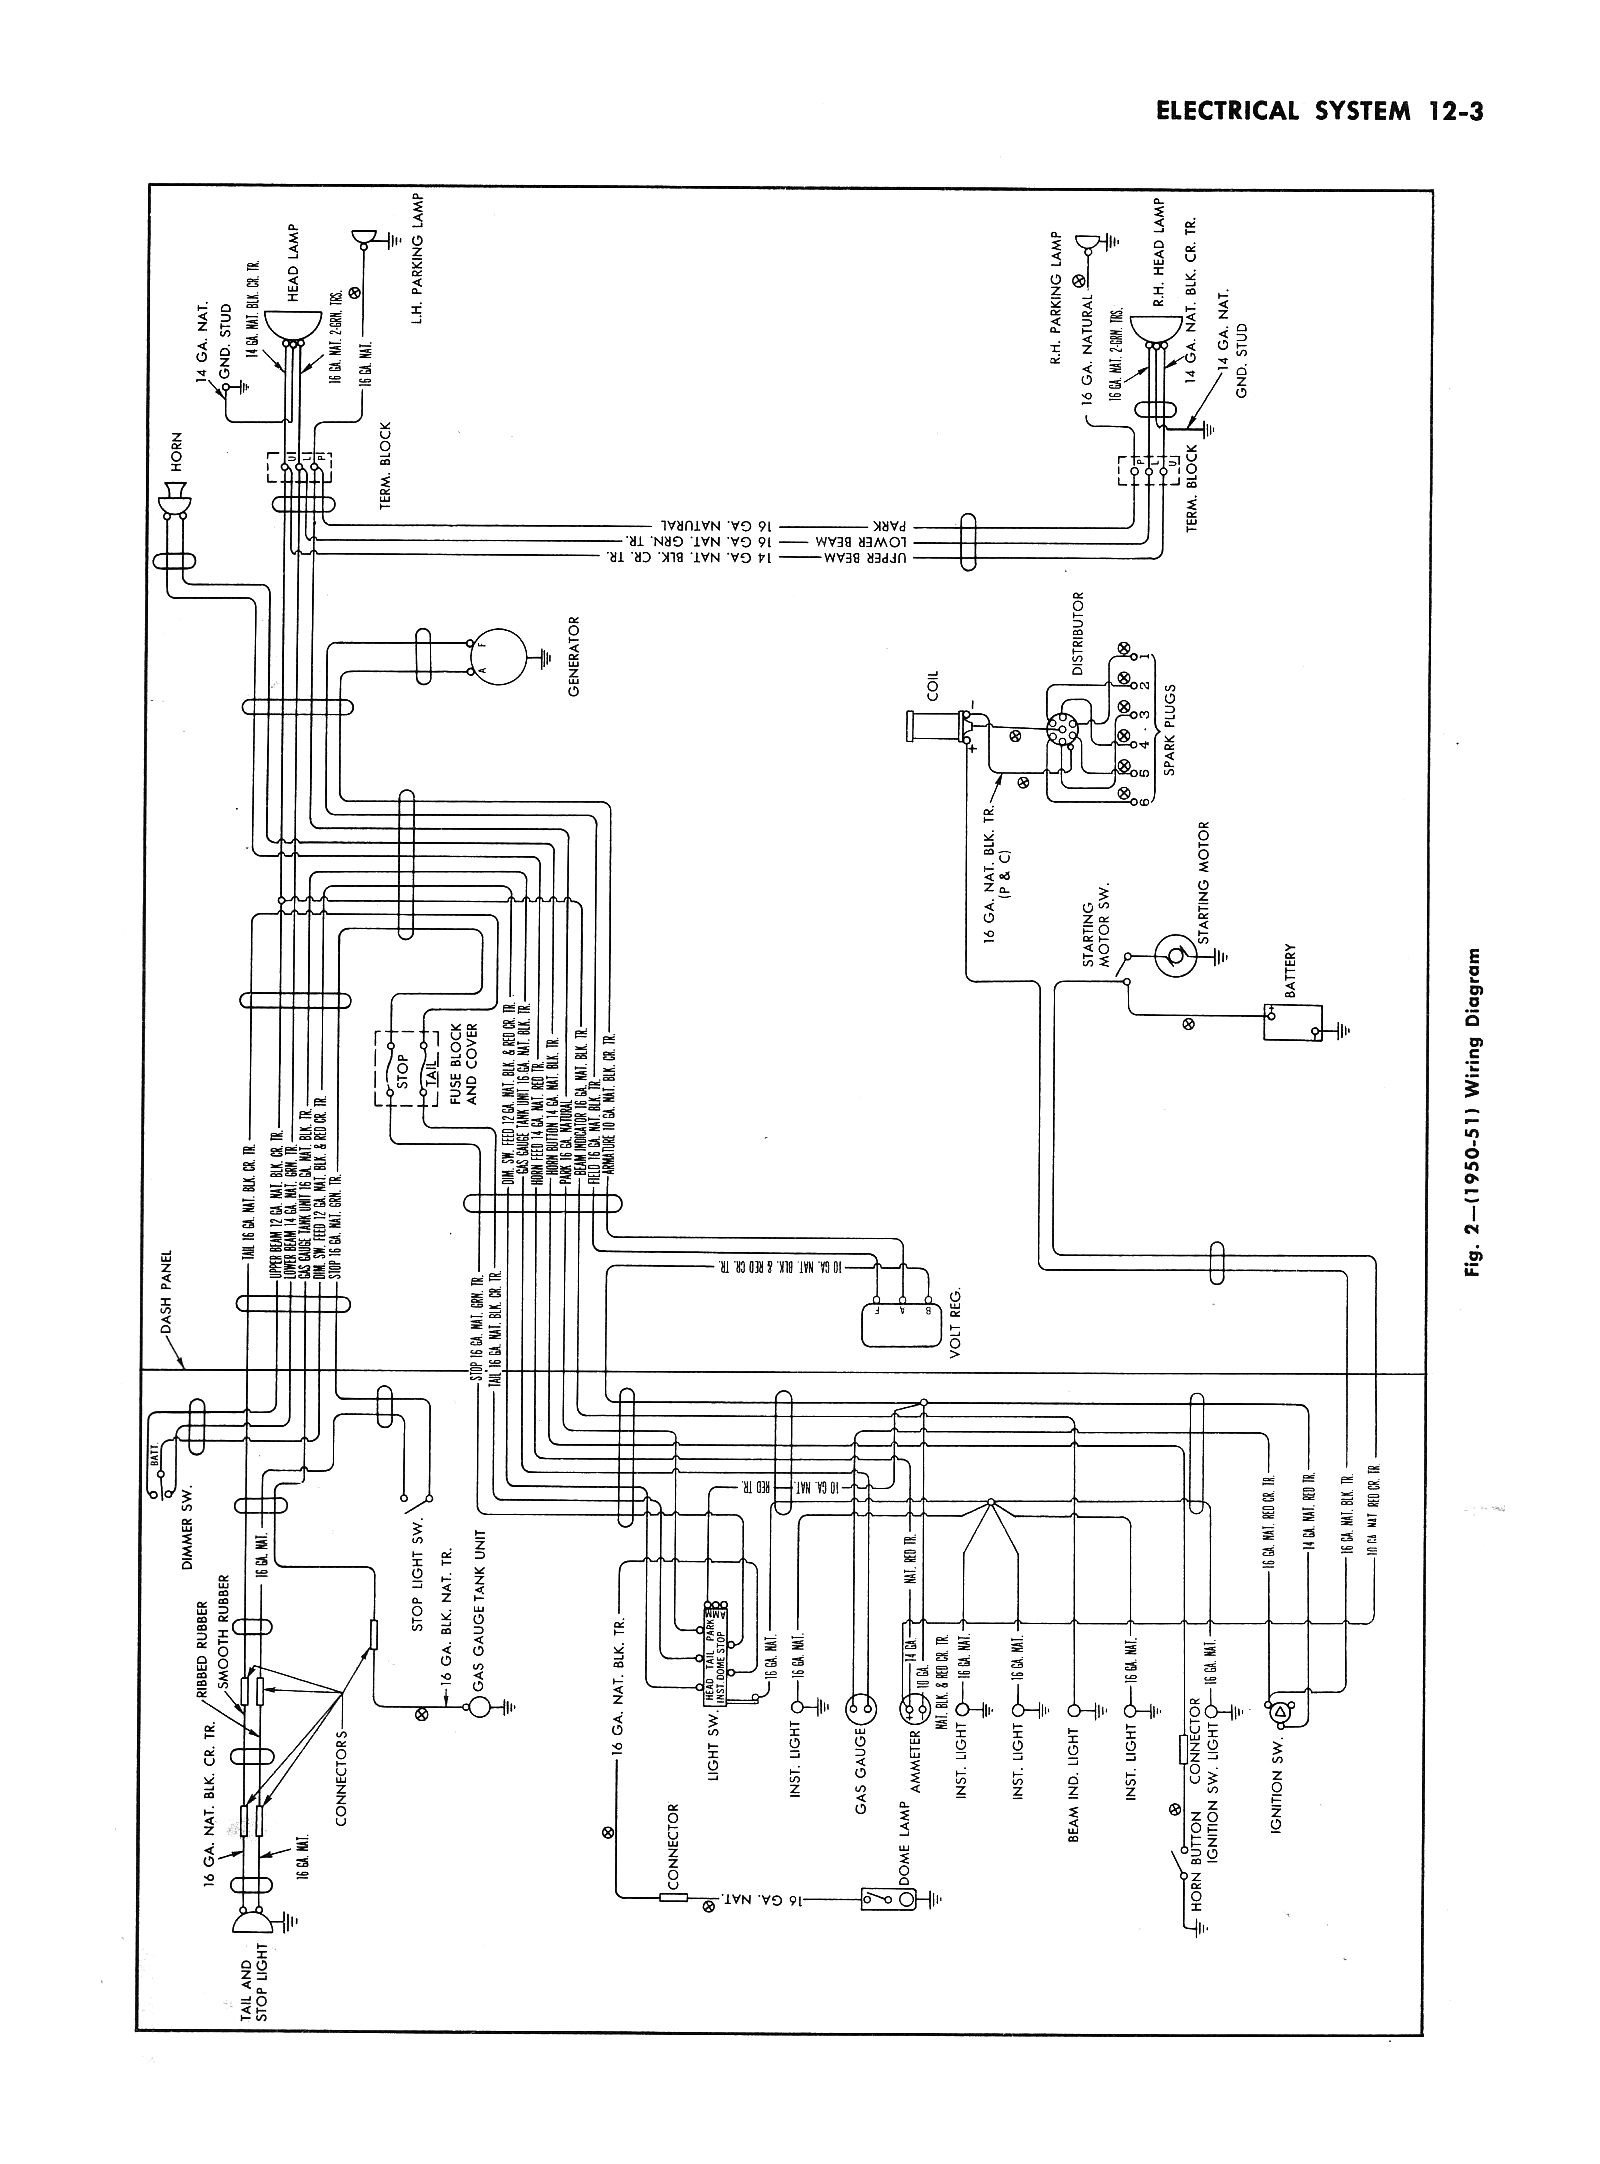 1970 Camaro Wiring Diagram As Well Chevy Diy Enthusiasts 1979 Schematic 48 Horn Diagrams Rh Boltsoft Net 1991 Harness